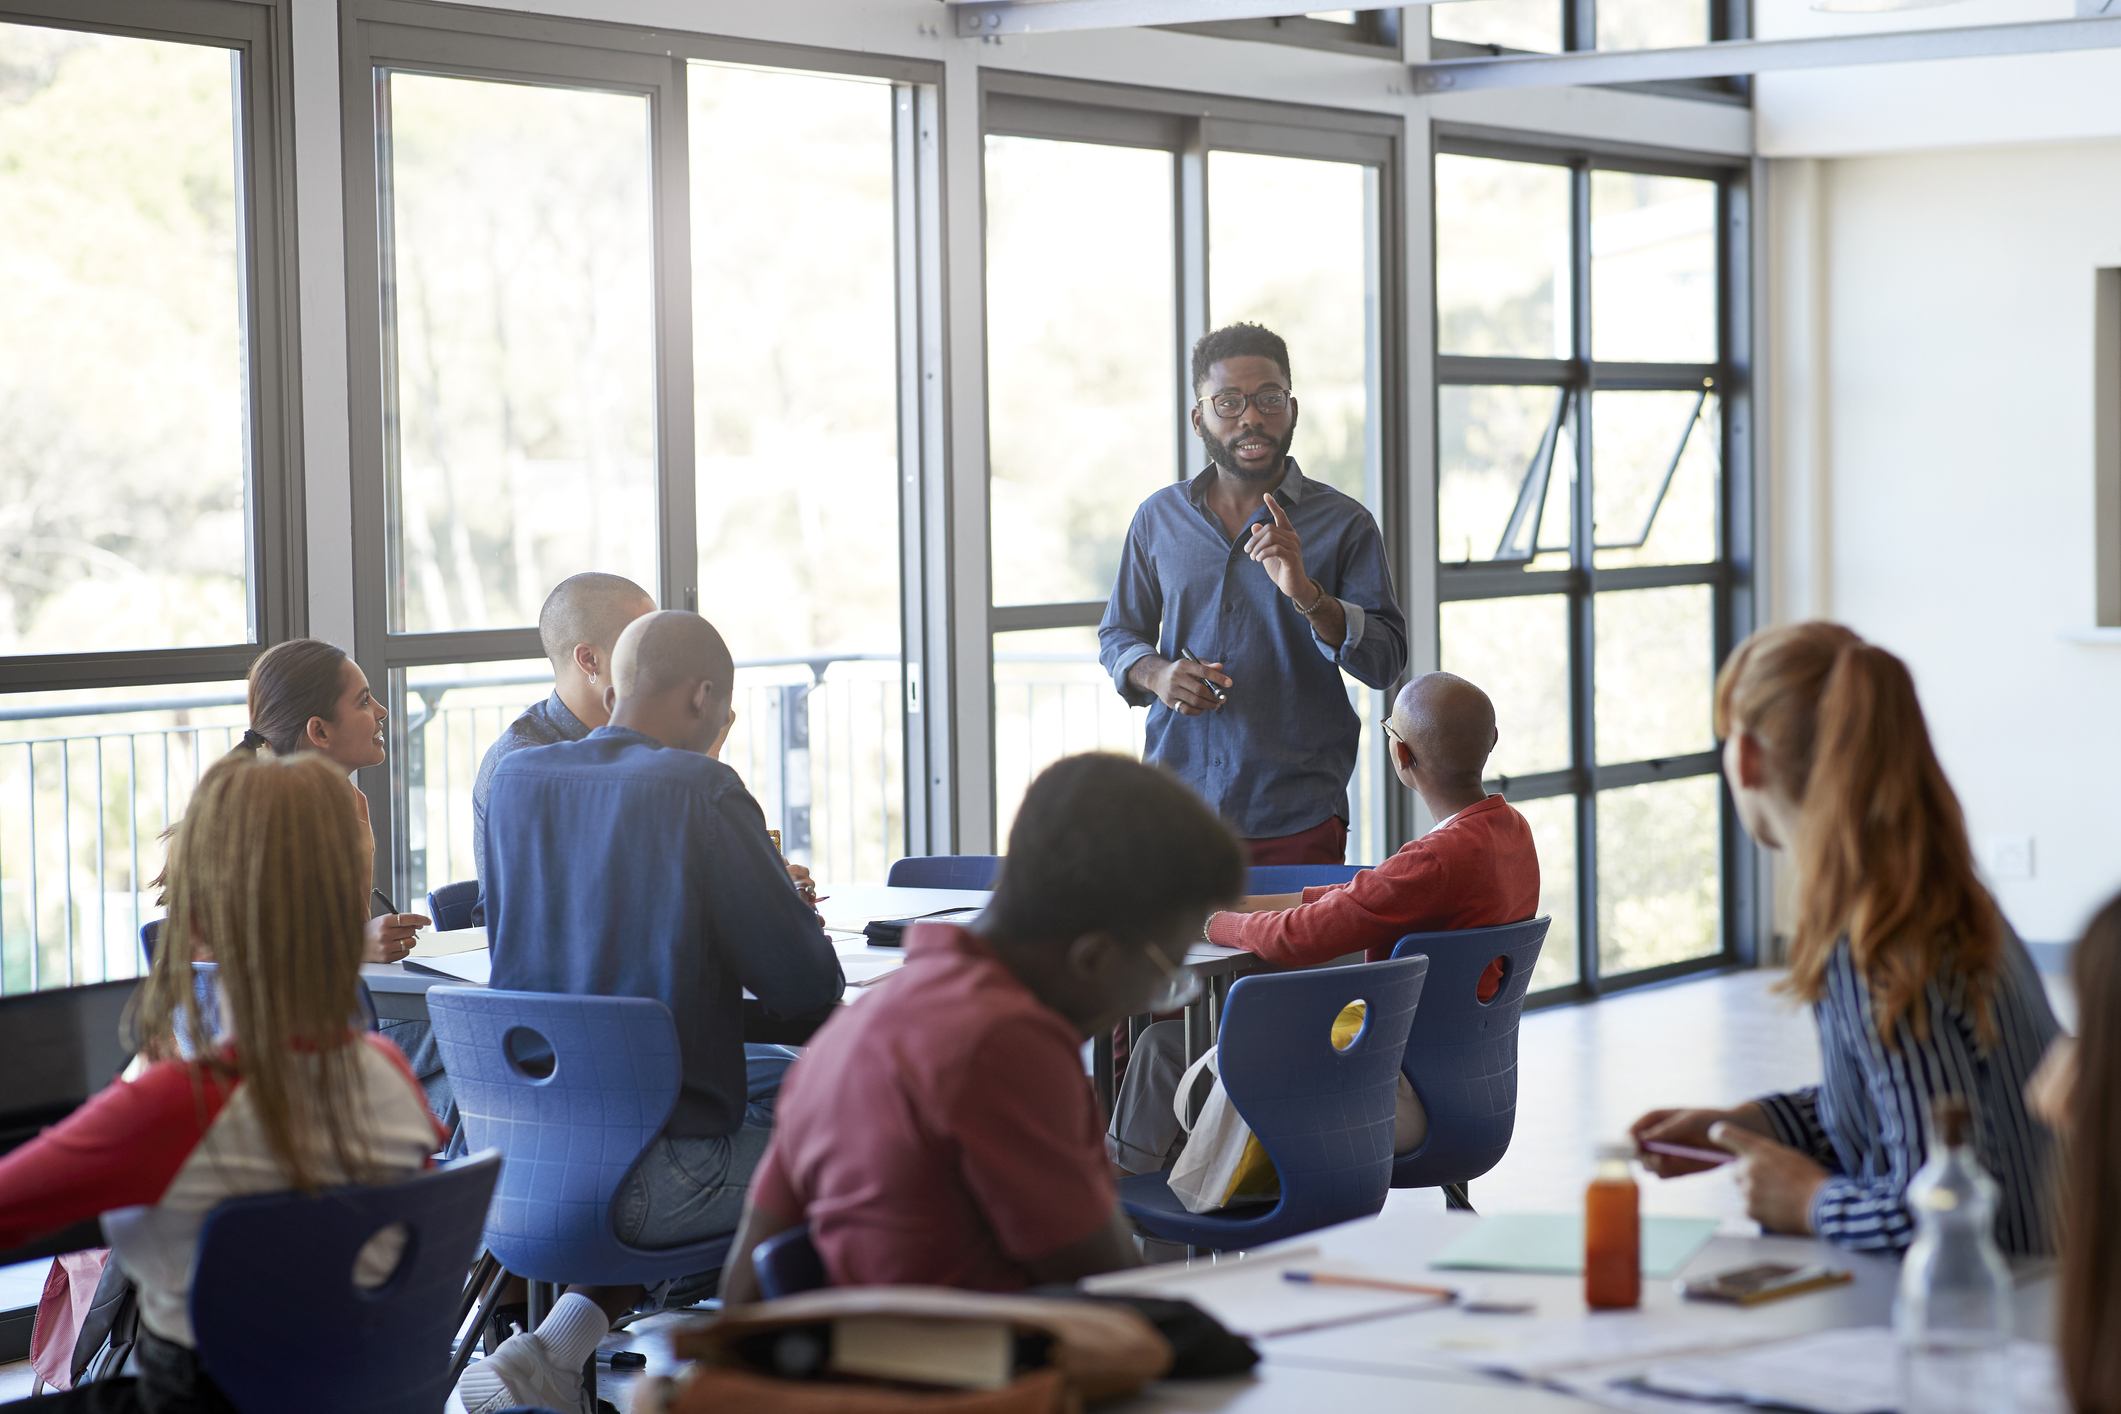 Students Are Eager to Get Involved in College Diversity Efforts